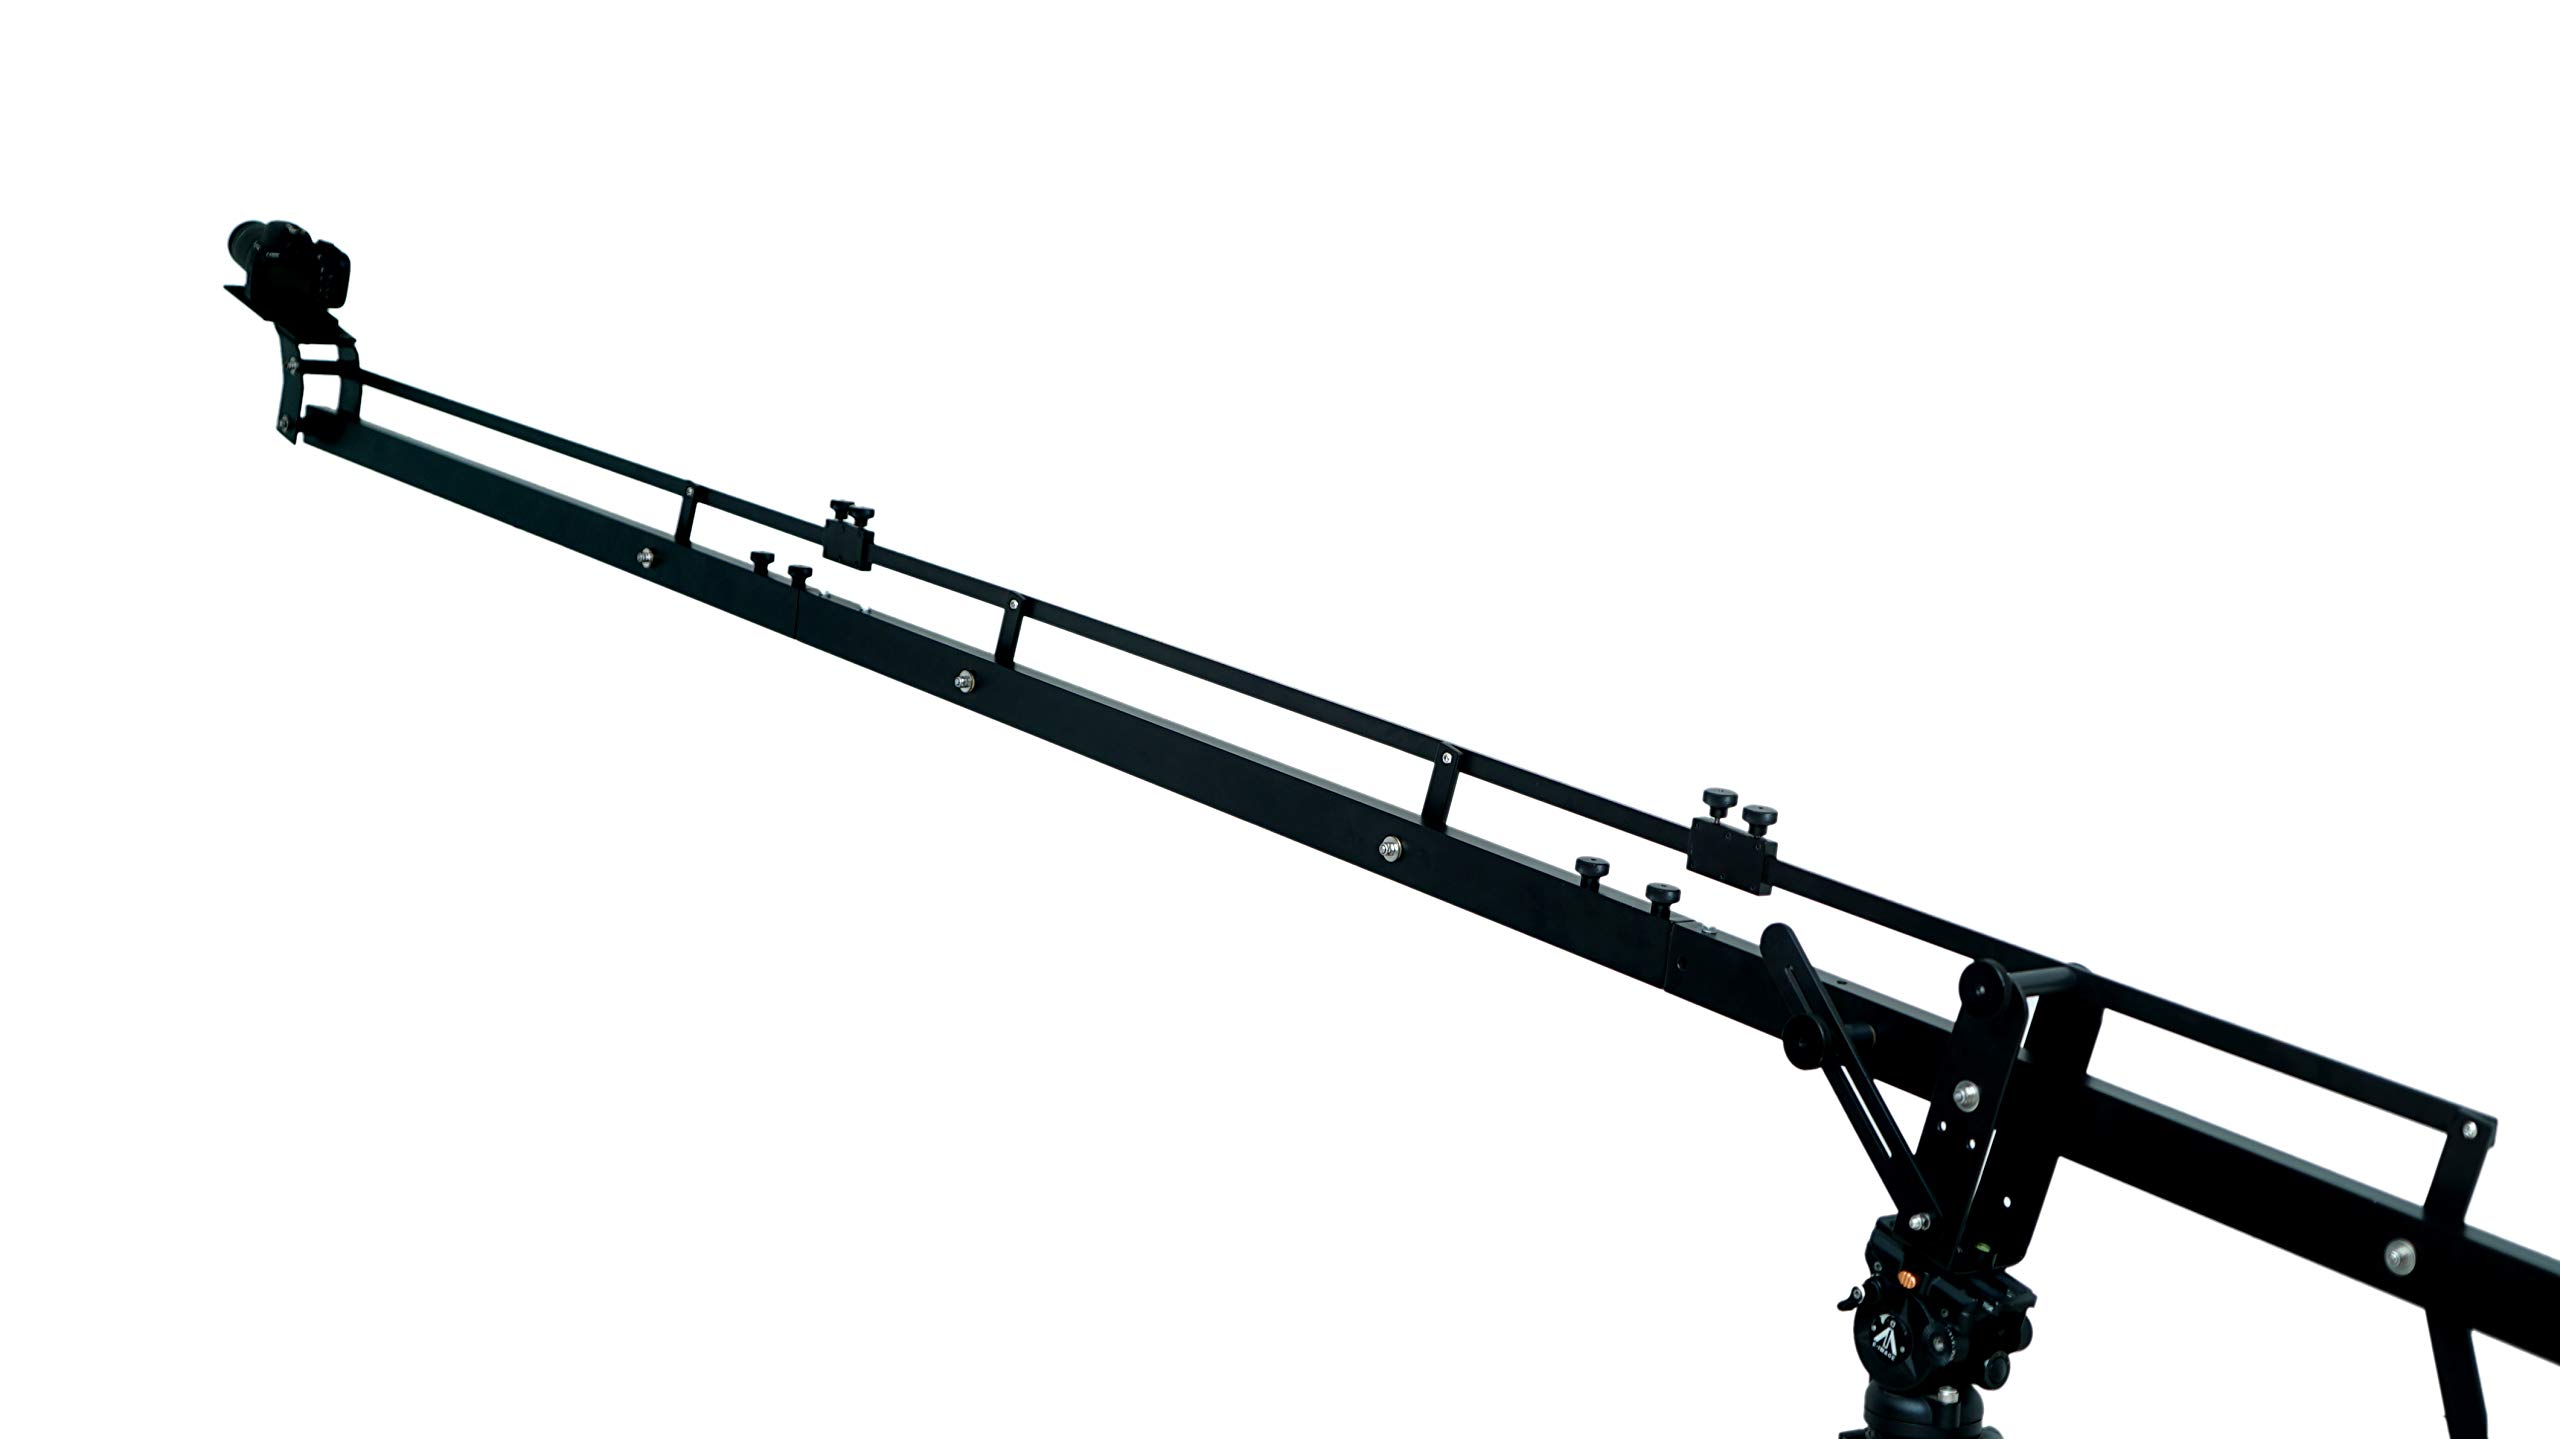 Camgear DSLR Video Camera Crane Jib DSLR Tilt with 11.5 feet Length | Heavy Duty Yet Lightweight, Best Travel/Indoor/Outdoor Aluminum Crane with LCD Arm and Bag by CamGear